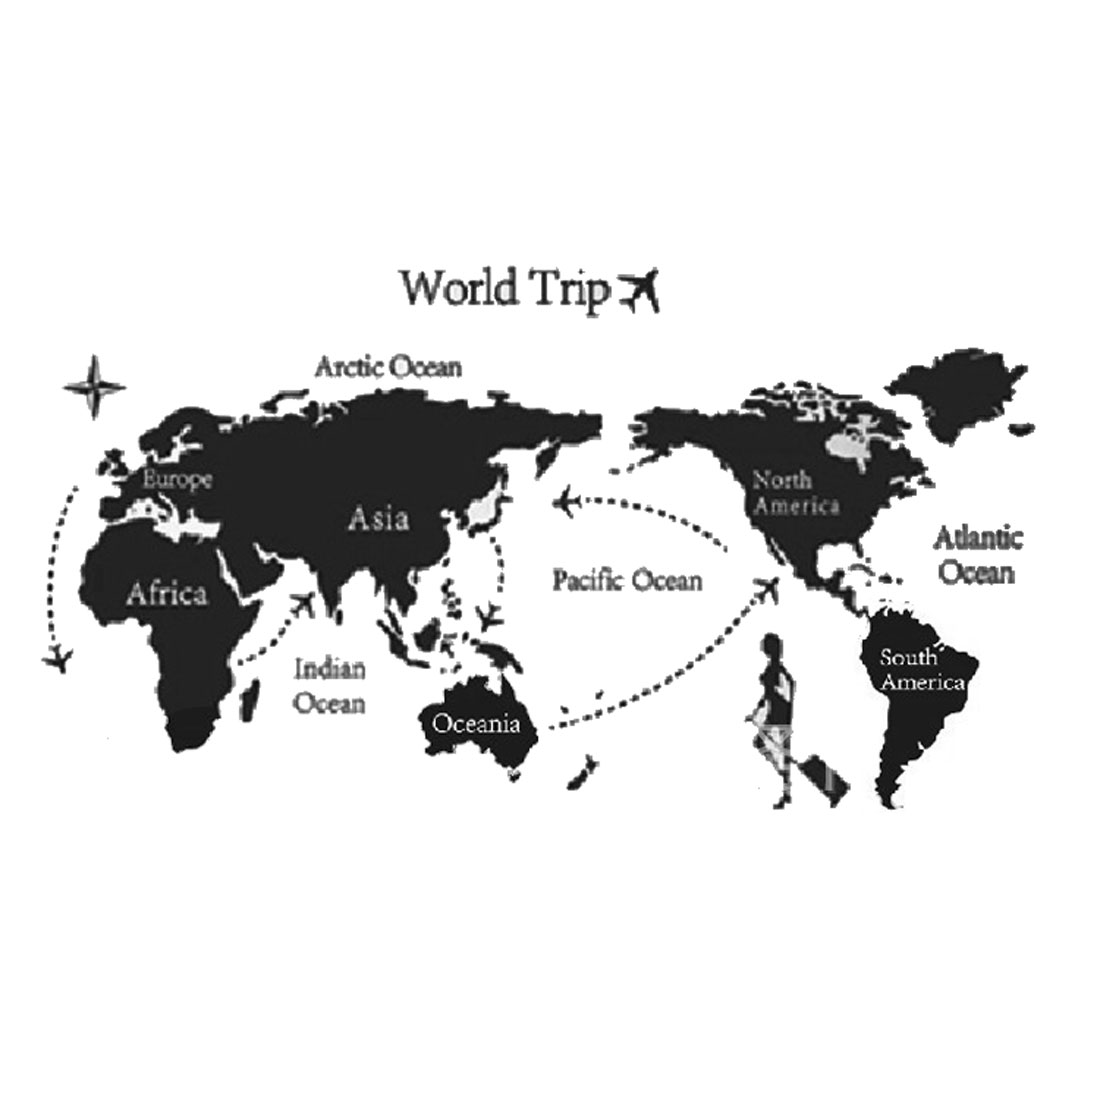 Wall Decor World Map Travel Pattern Decal Stickers White Black